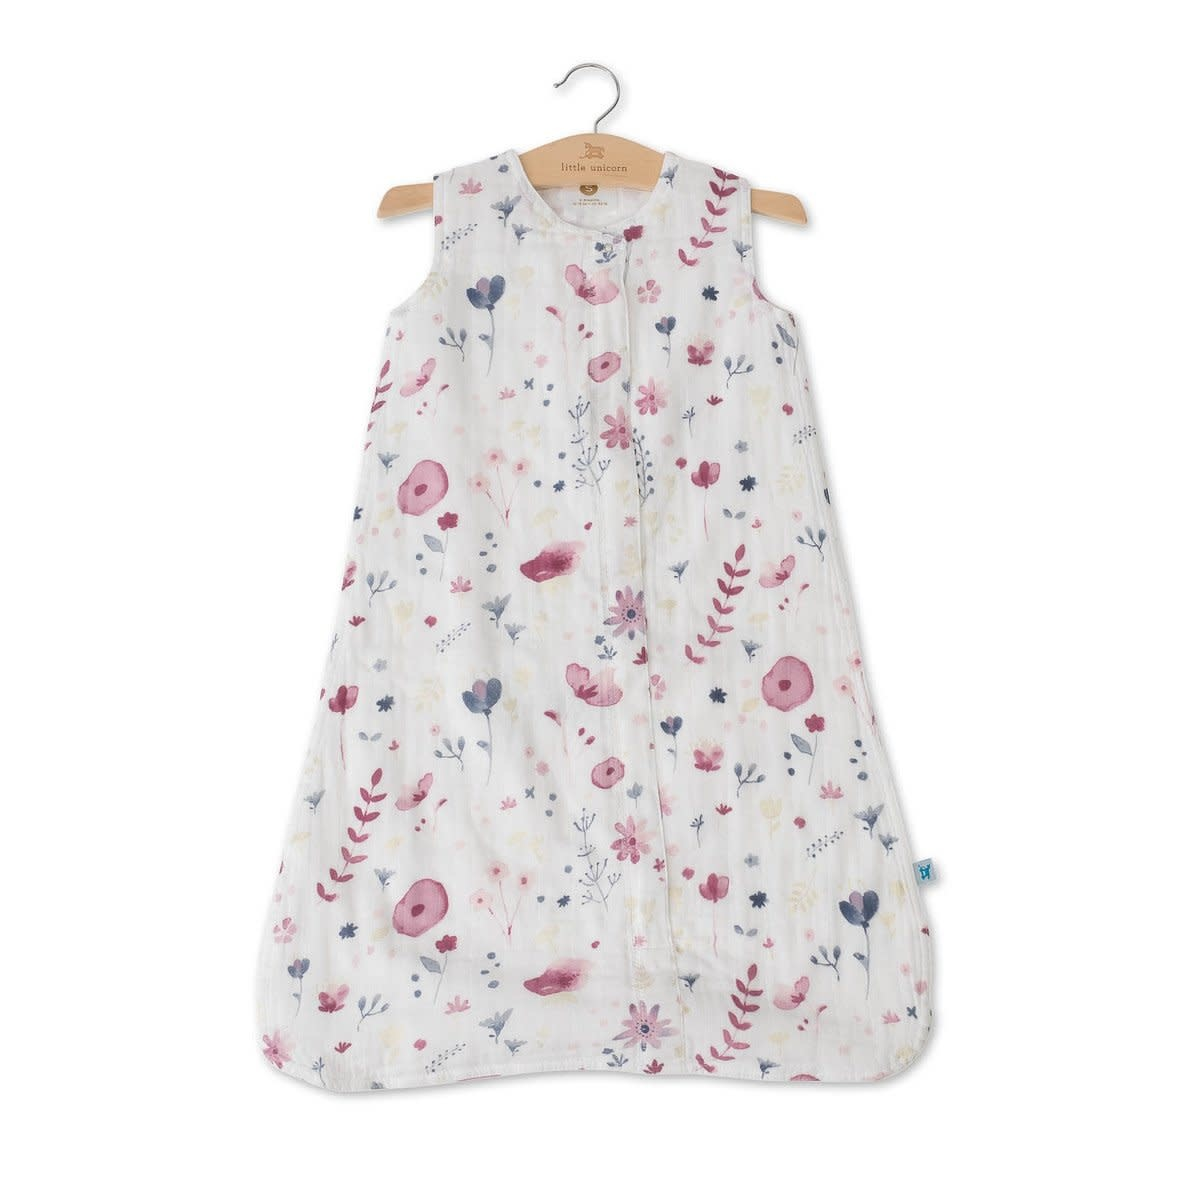 Little Unicorn Cotton Muslin Sleep Bag Small - Fairy Garden